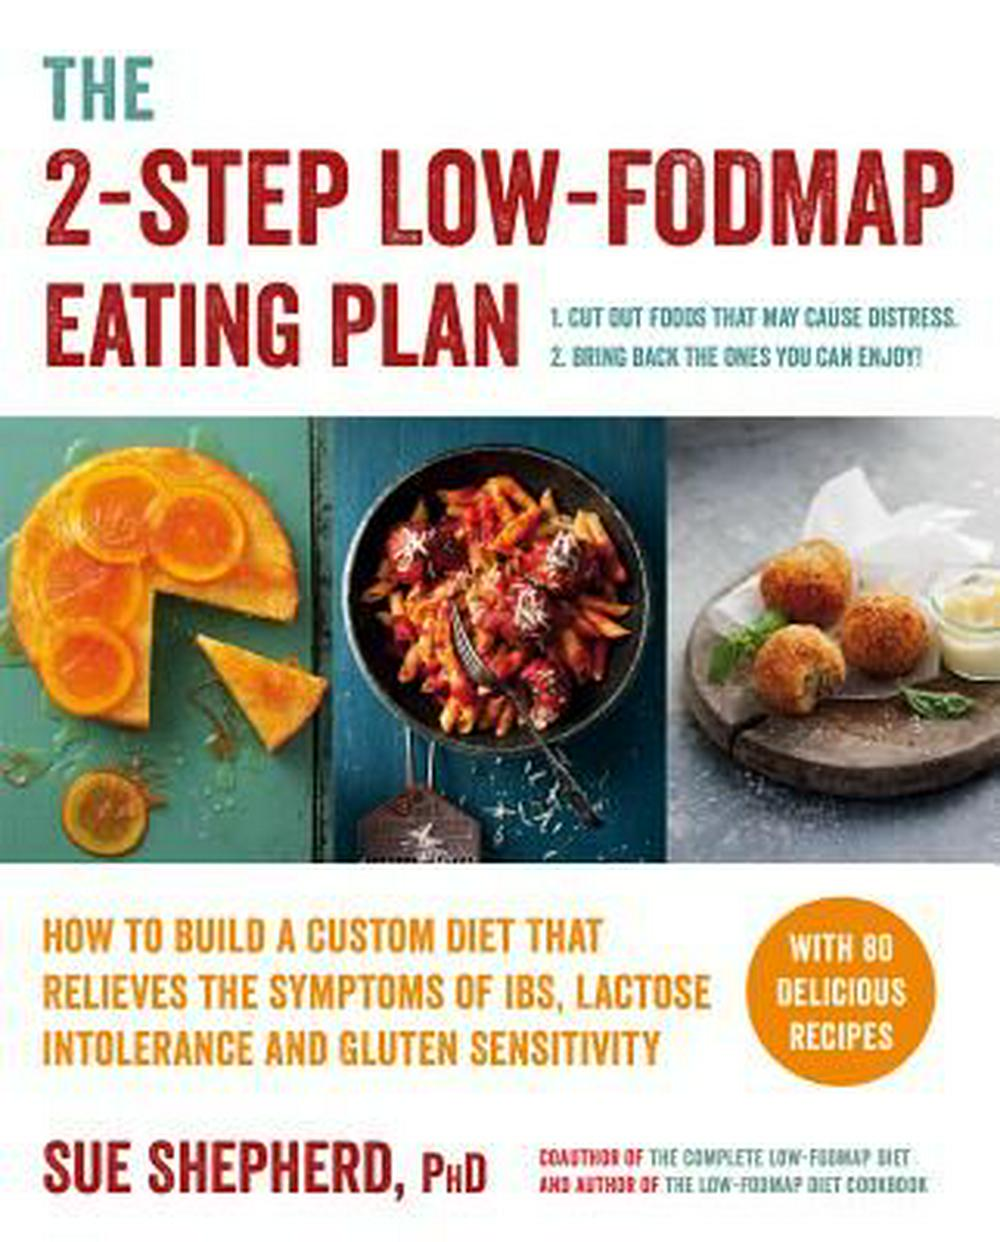 The 2-Step Low-Fodmap Diet Solution: The Essential Guide to Managing Ibs and Food Intolerance Symptoms